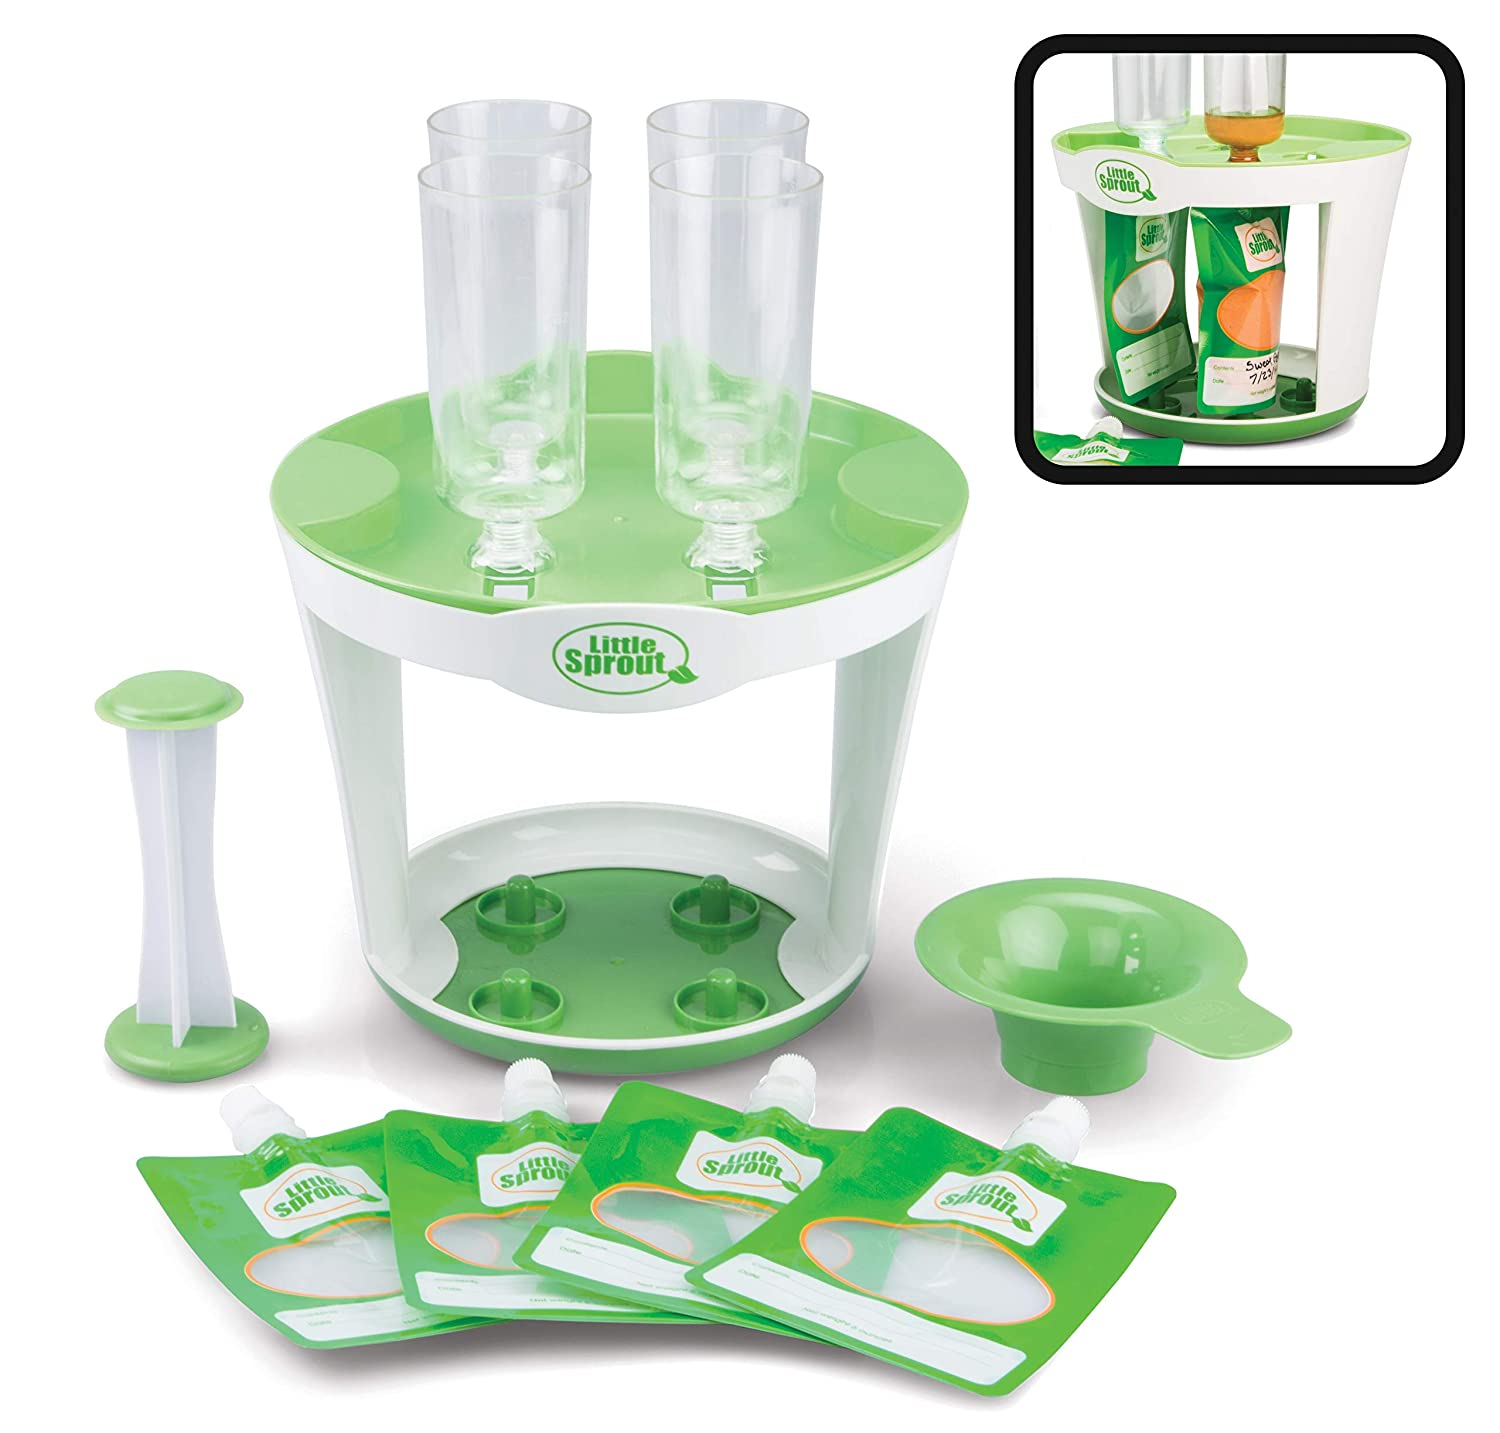 Baby Food Maker For Infants & Toddlers (11 Piece Set)- Make 4 6oz Food Squeeze Purees at Once w/ Fill Station, Pouches, Funnel, Tubes & Plunger- Dishwasher Safe & BPA Free for Homemade Semi-Solid Food